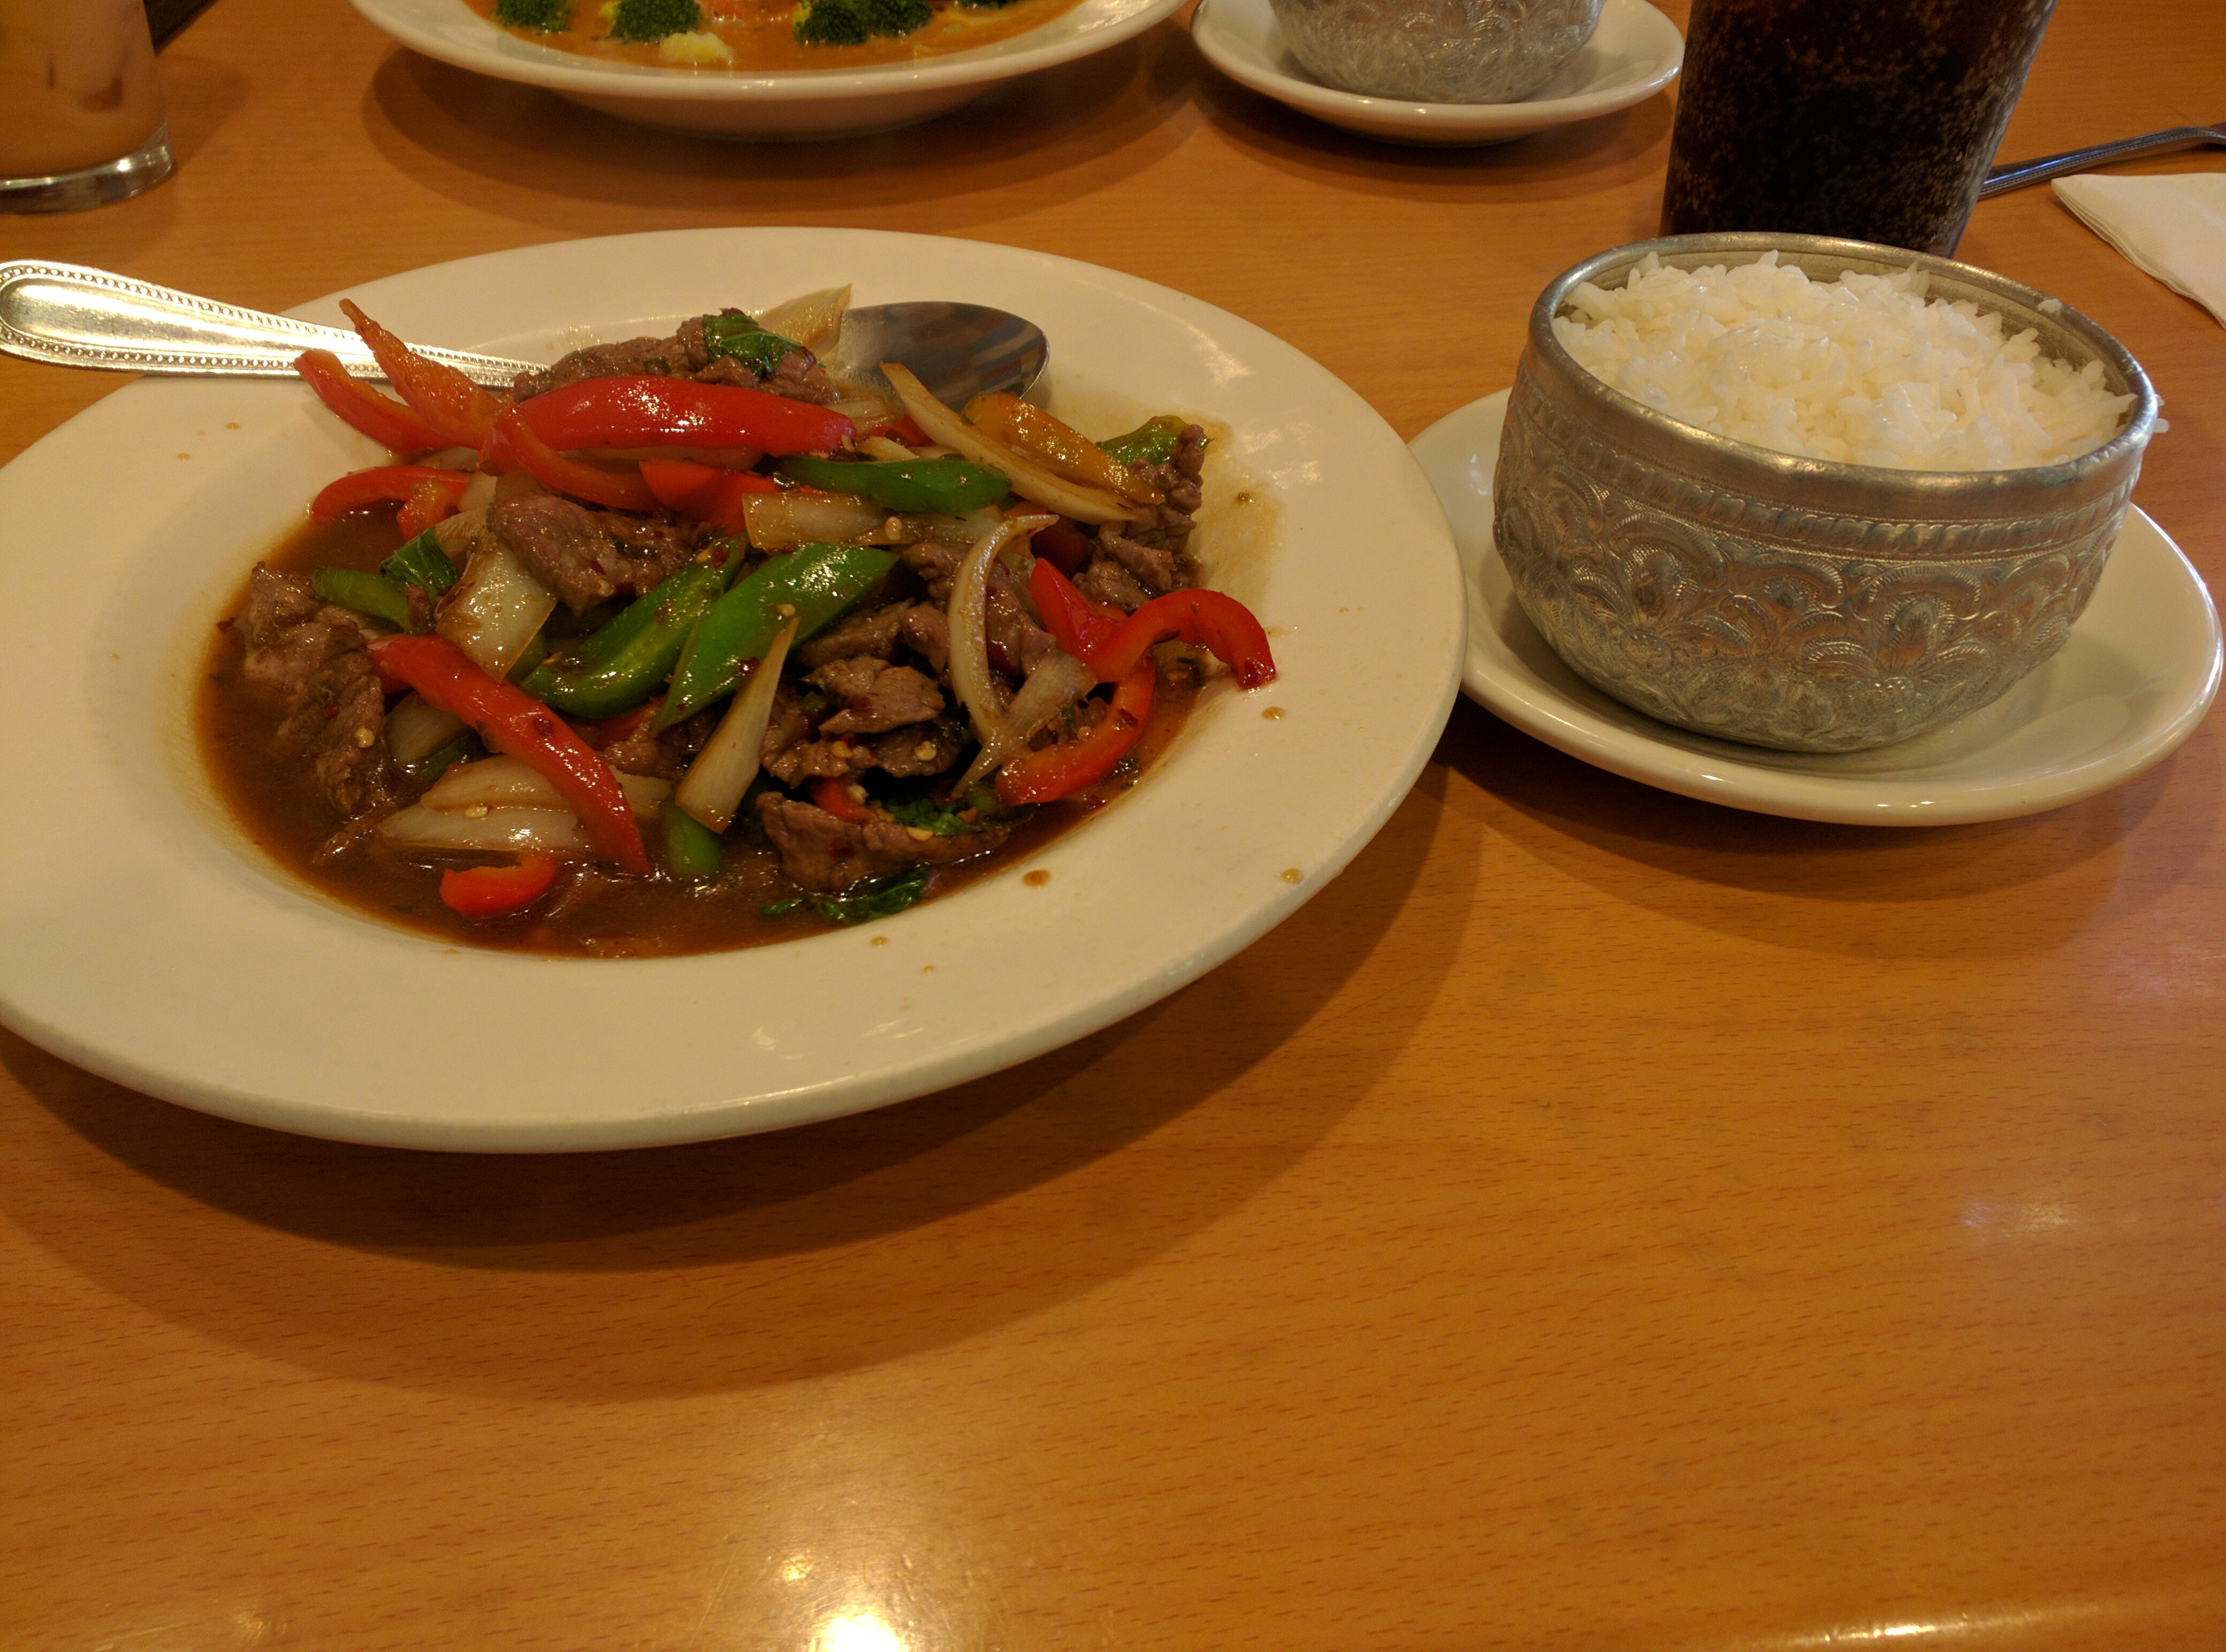 Spicy Basil with Beef and White Rice from Siam Thai in Temecula, California